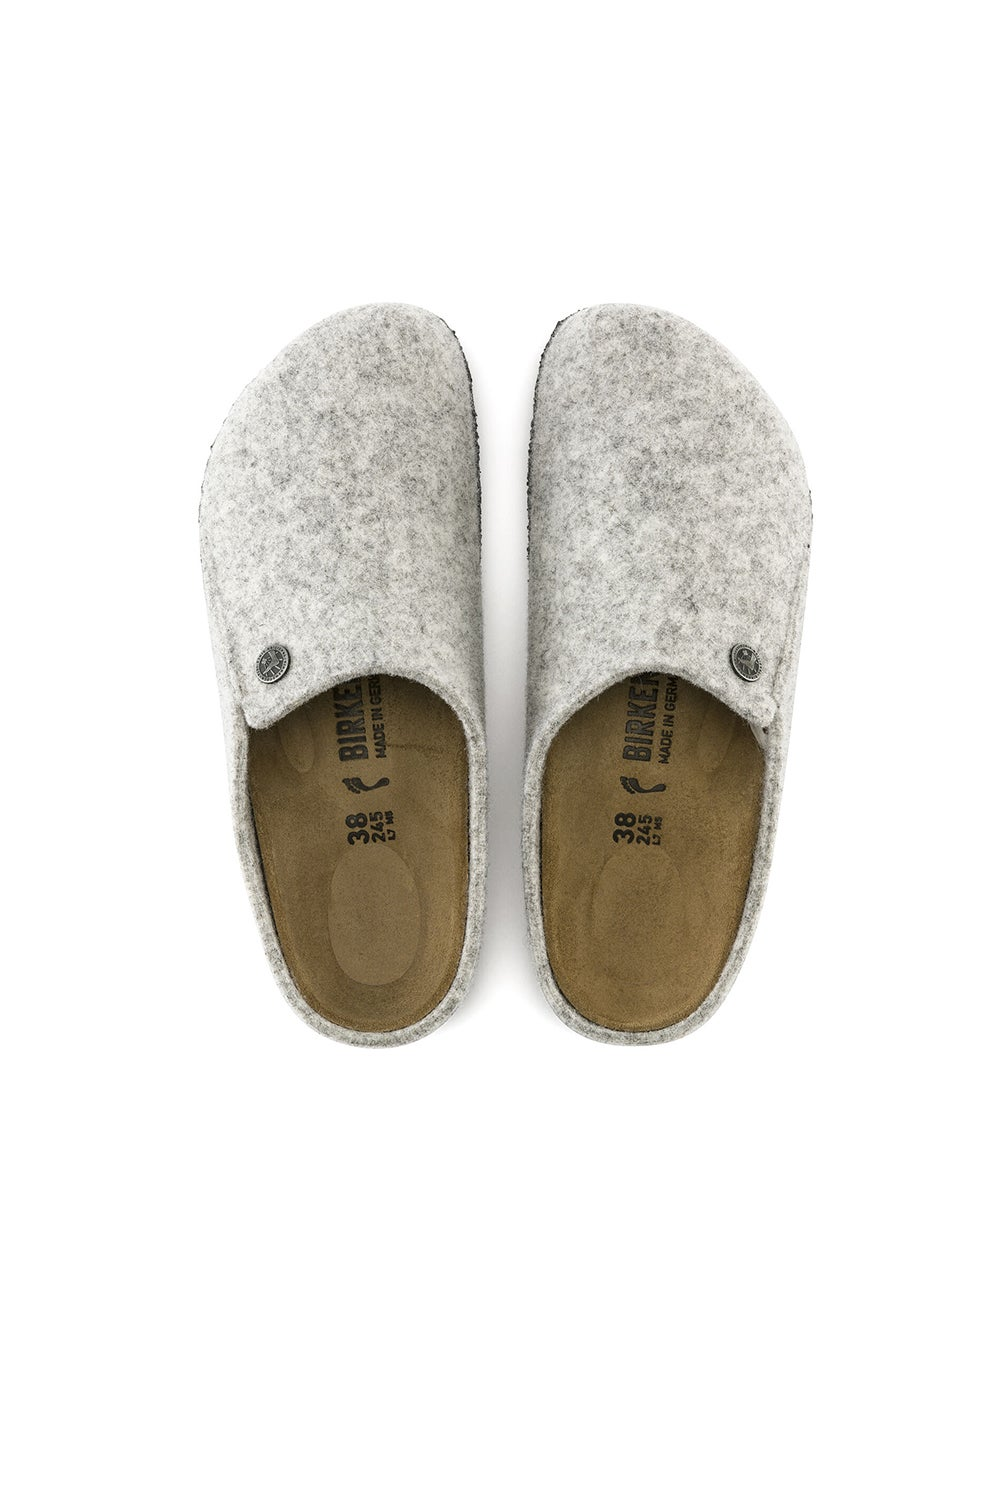 Birkenstock Zermatt Narrow Fit Light Grey